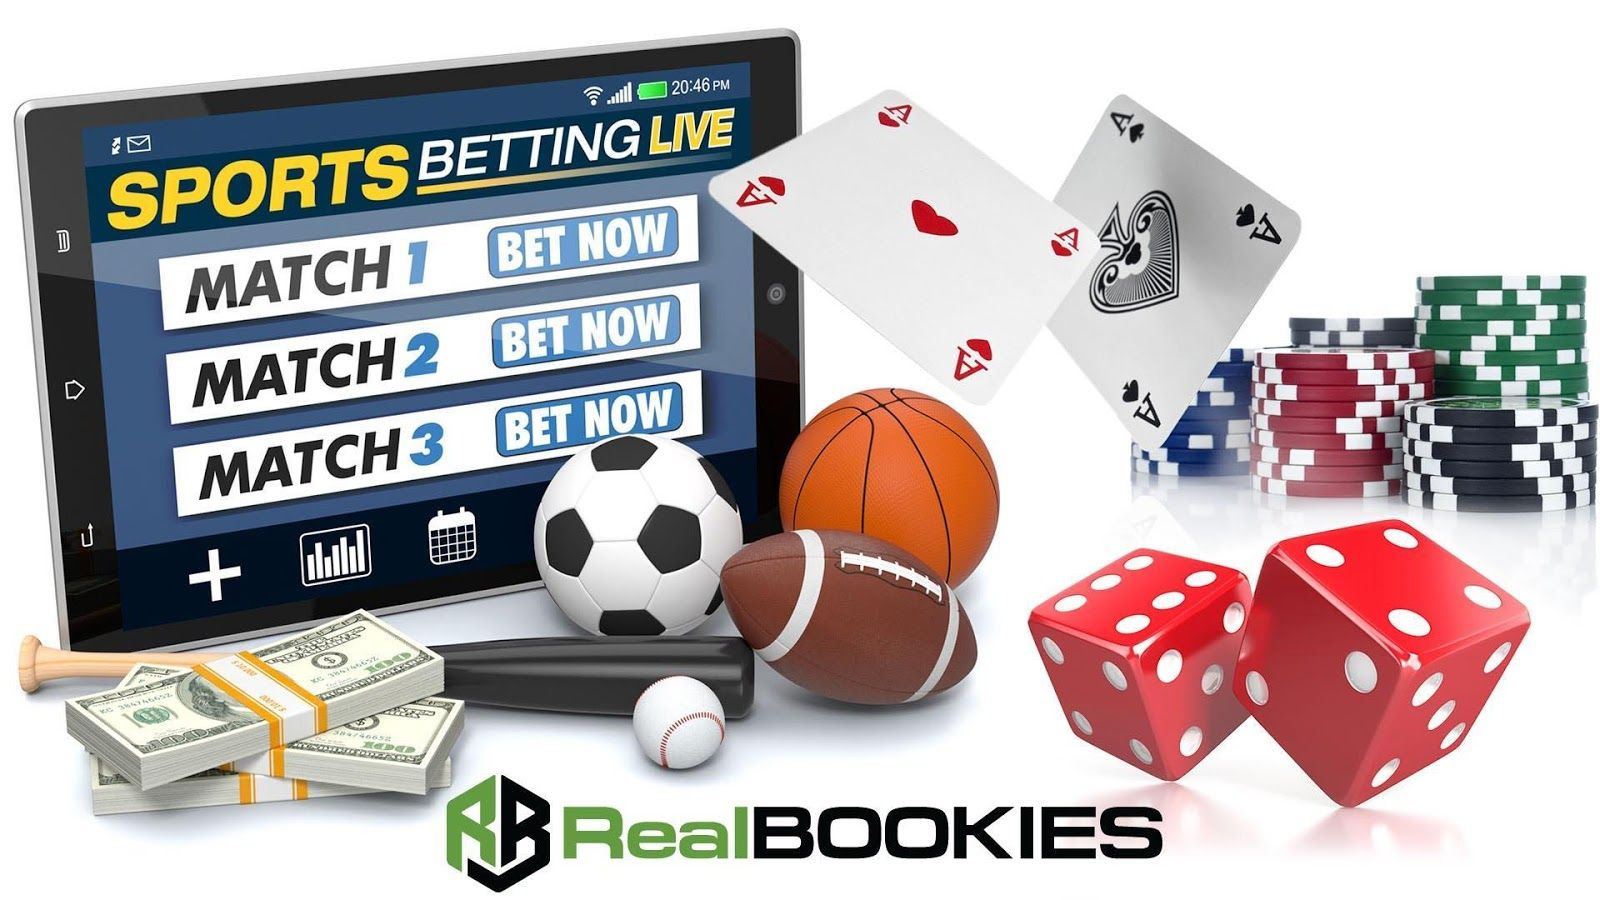 2bet ag live betting trends betting windrawwin